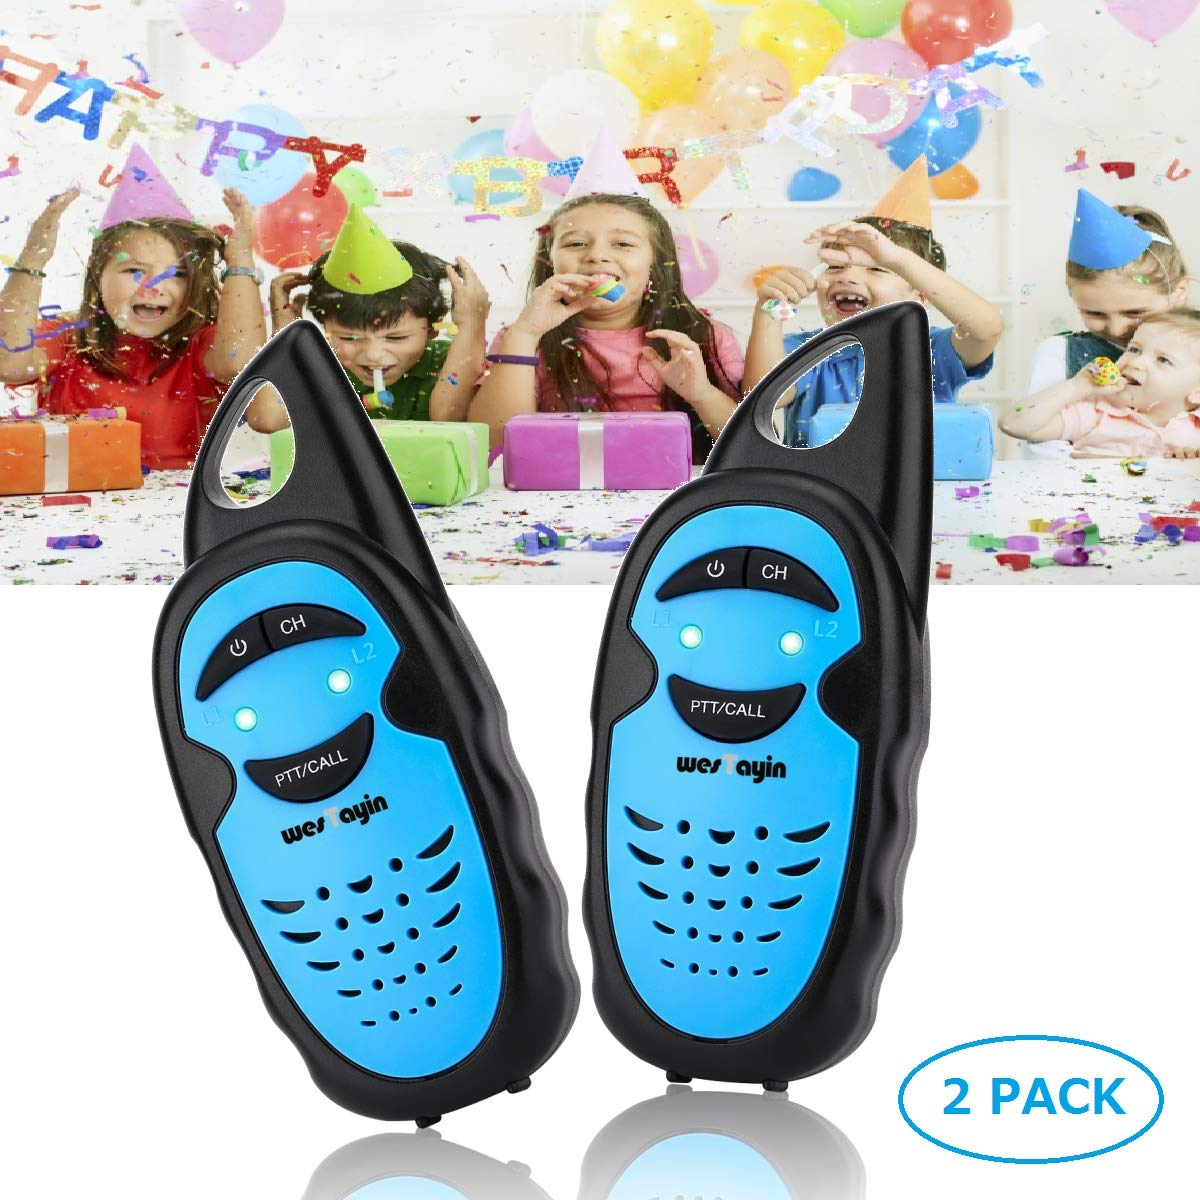 WES TAYIN Upgraded Walkie Talkies for Kids, Up to 2-Mile and 3 Channels Easy to Use Walkie Talkies for Toddlers, Toy Walkie Talkies for Little Hands Boys Gifts by WES TAYIN (Image #1)